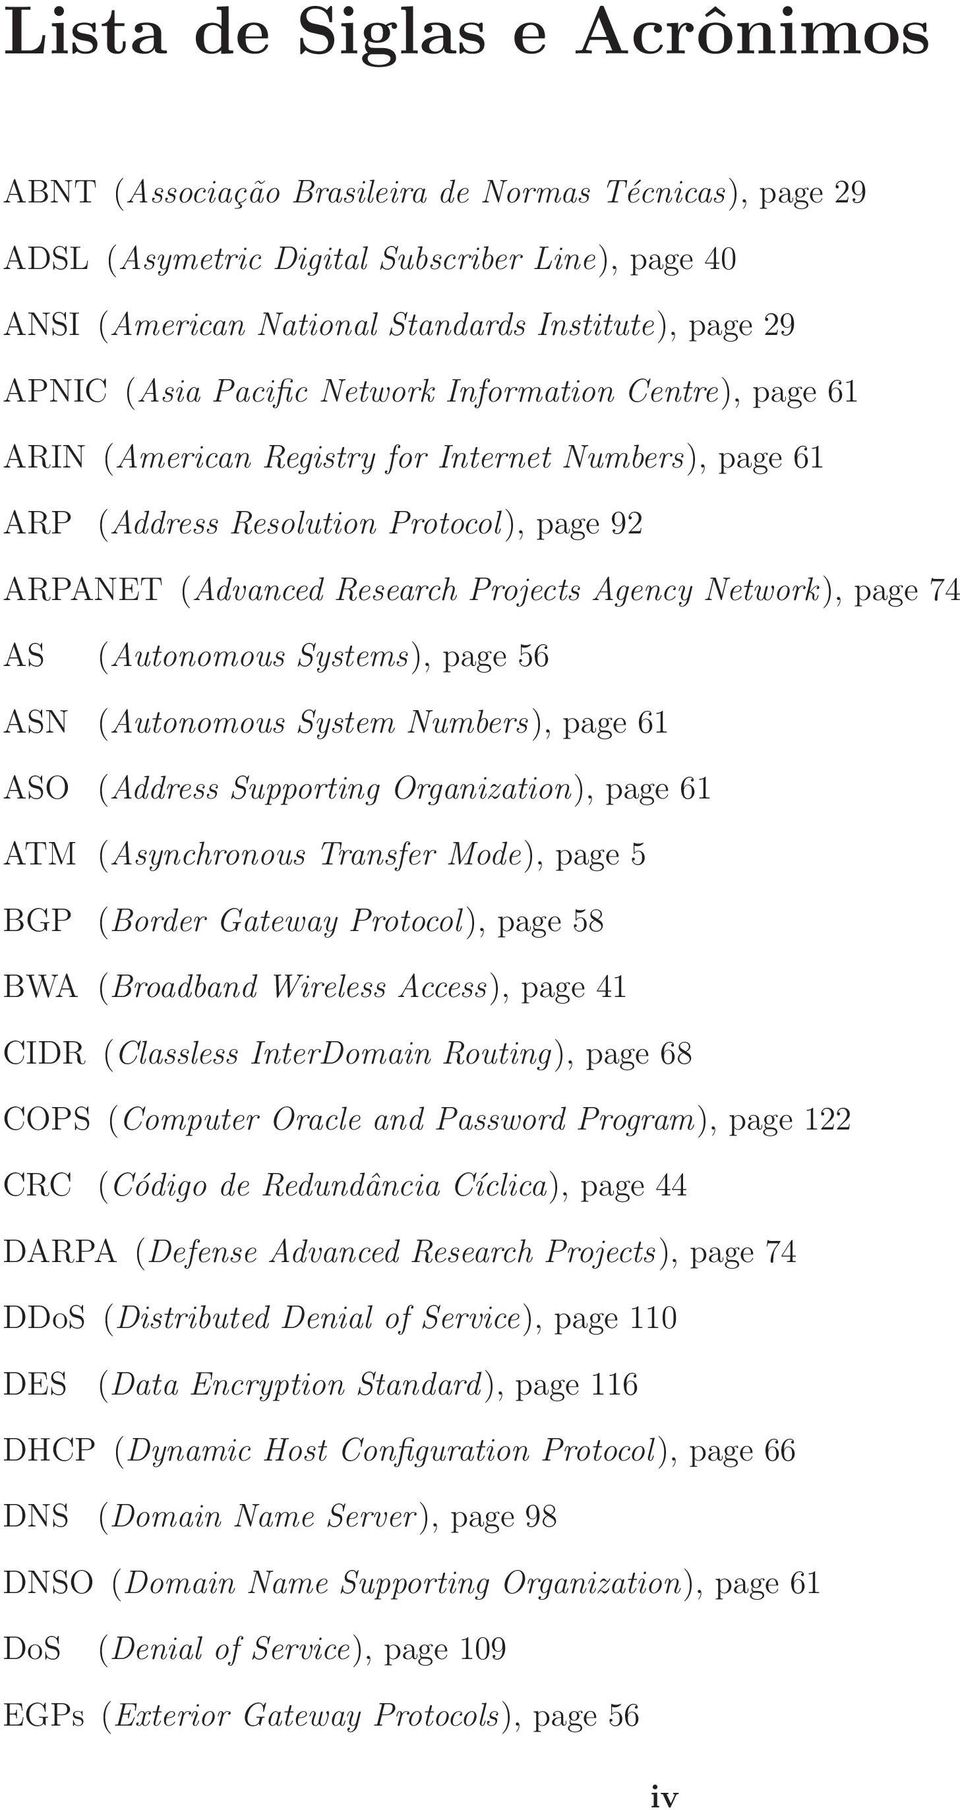 Network), page 74 AS (Autonomous Systems), page 56 ASN (Autonomous System Numbers), page 61 ASO (Address Supporting Organization), page 61 ATM (Asynchronous Transfer Mode), page 5 BGP (Border Gateway